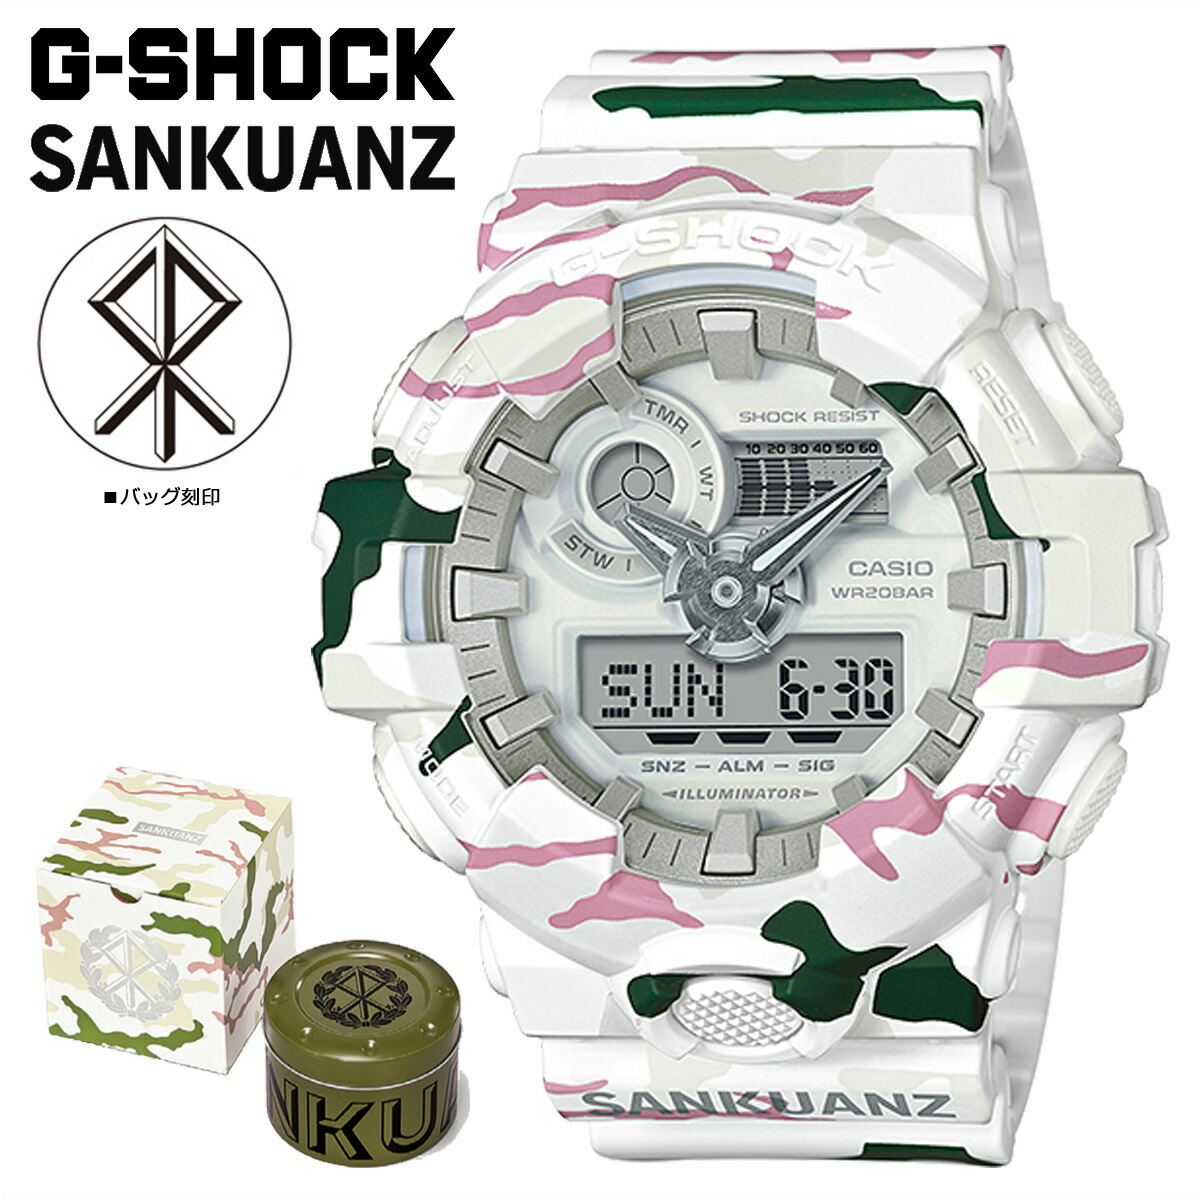 Casio G Shock Ga 700skz 7ajr Seiko Solar Blue Dial Stainless Steel Mens Watch Ssc221 Silver Absolute Toughness